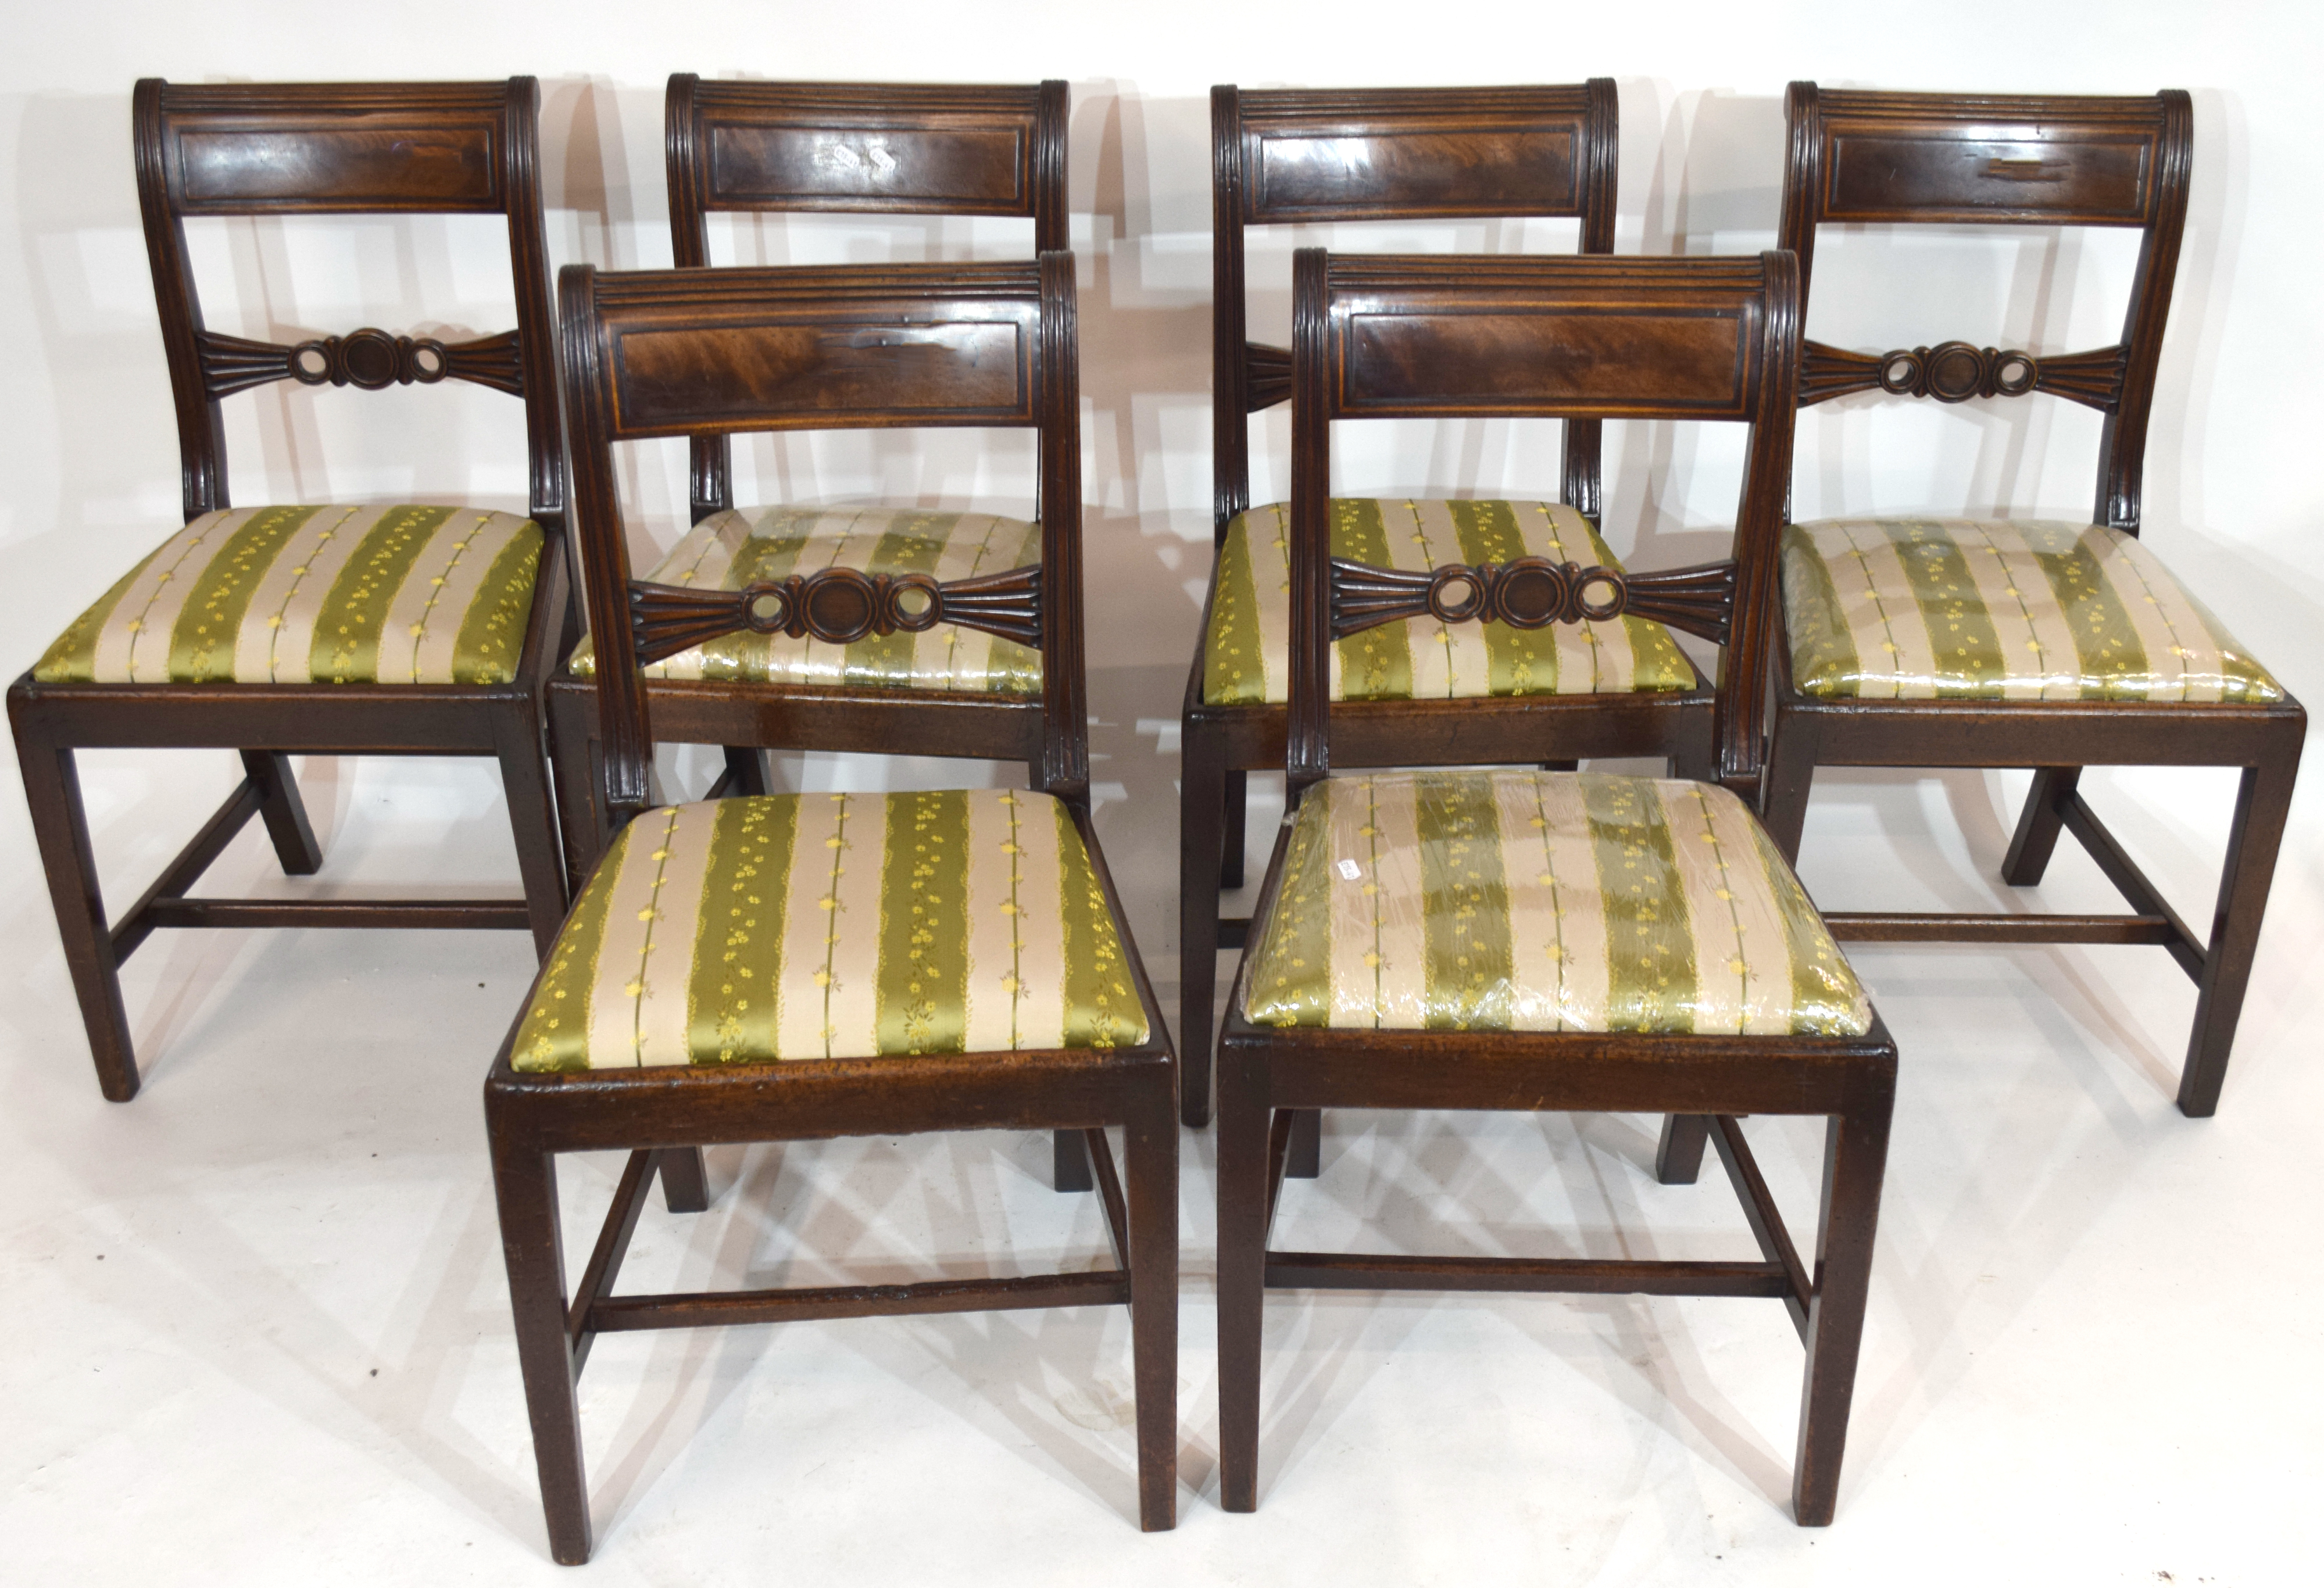 Set of six 19th century mahogany bar back dining chairs with striped upholstered seats, tapering - Image 2 of 2